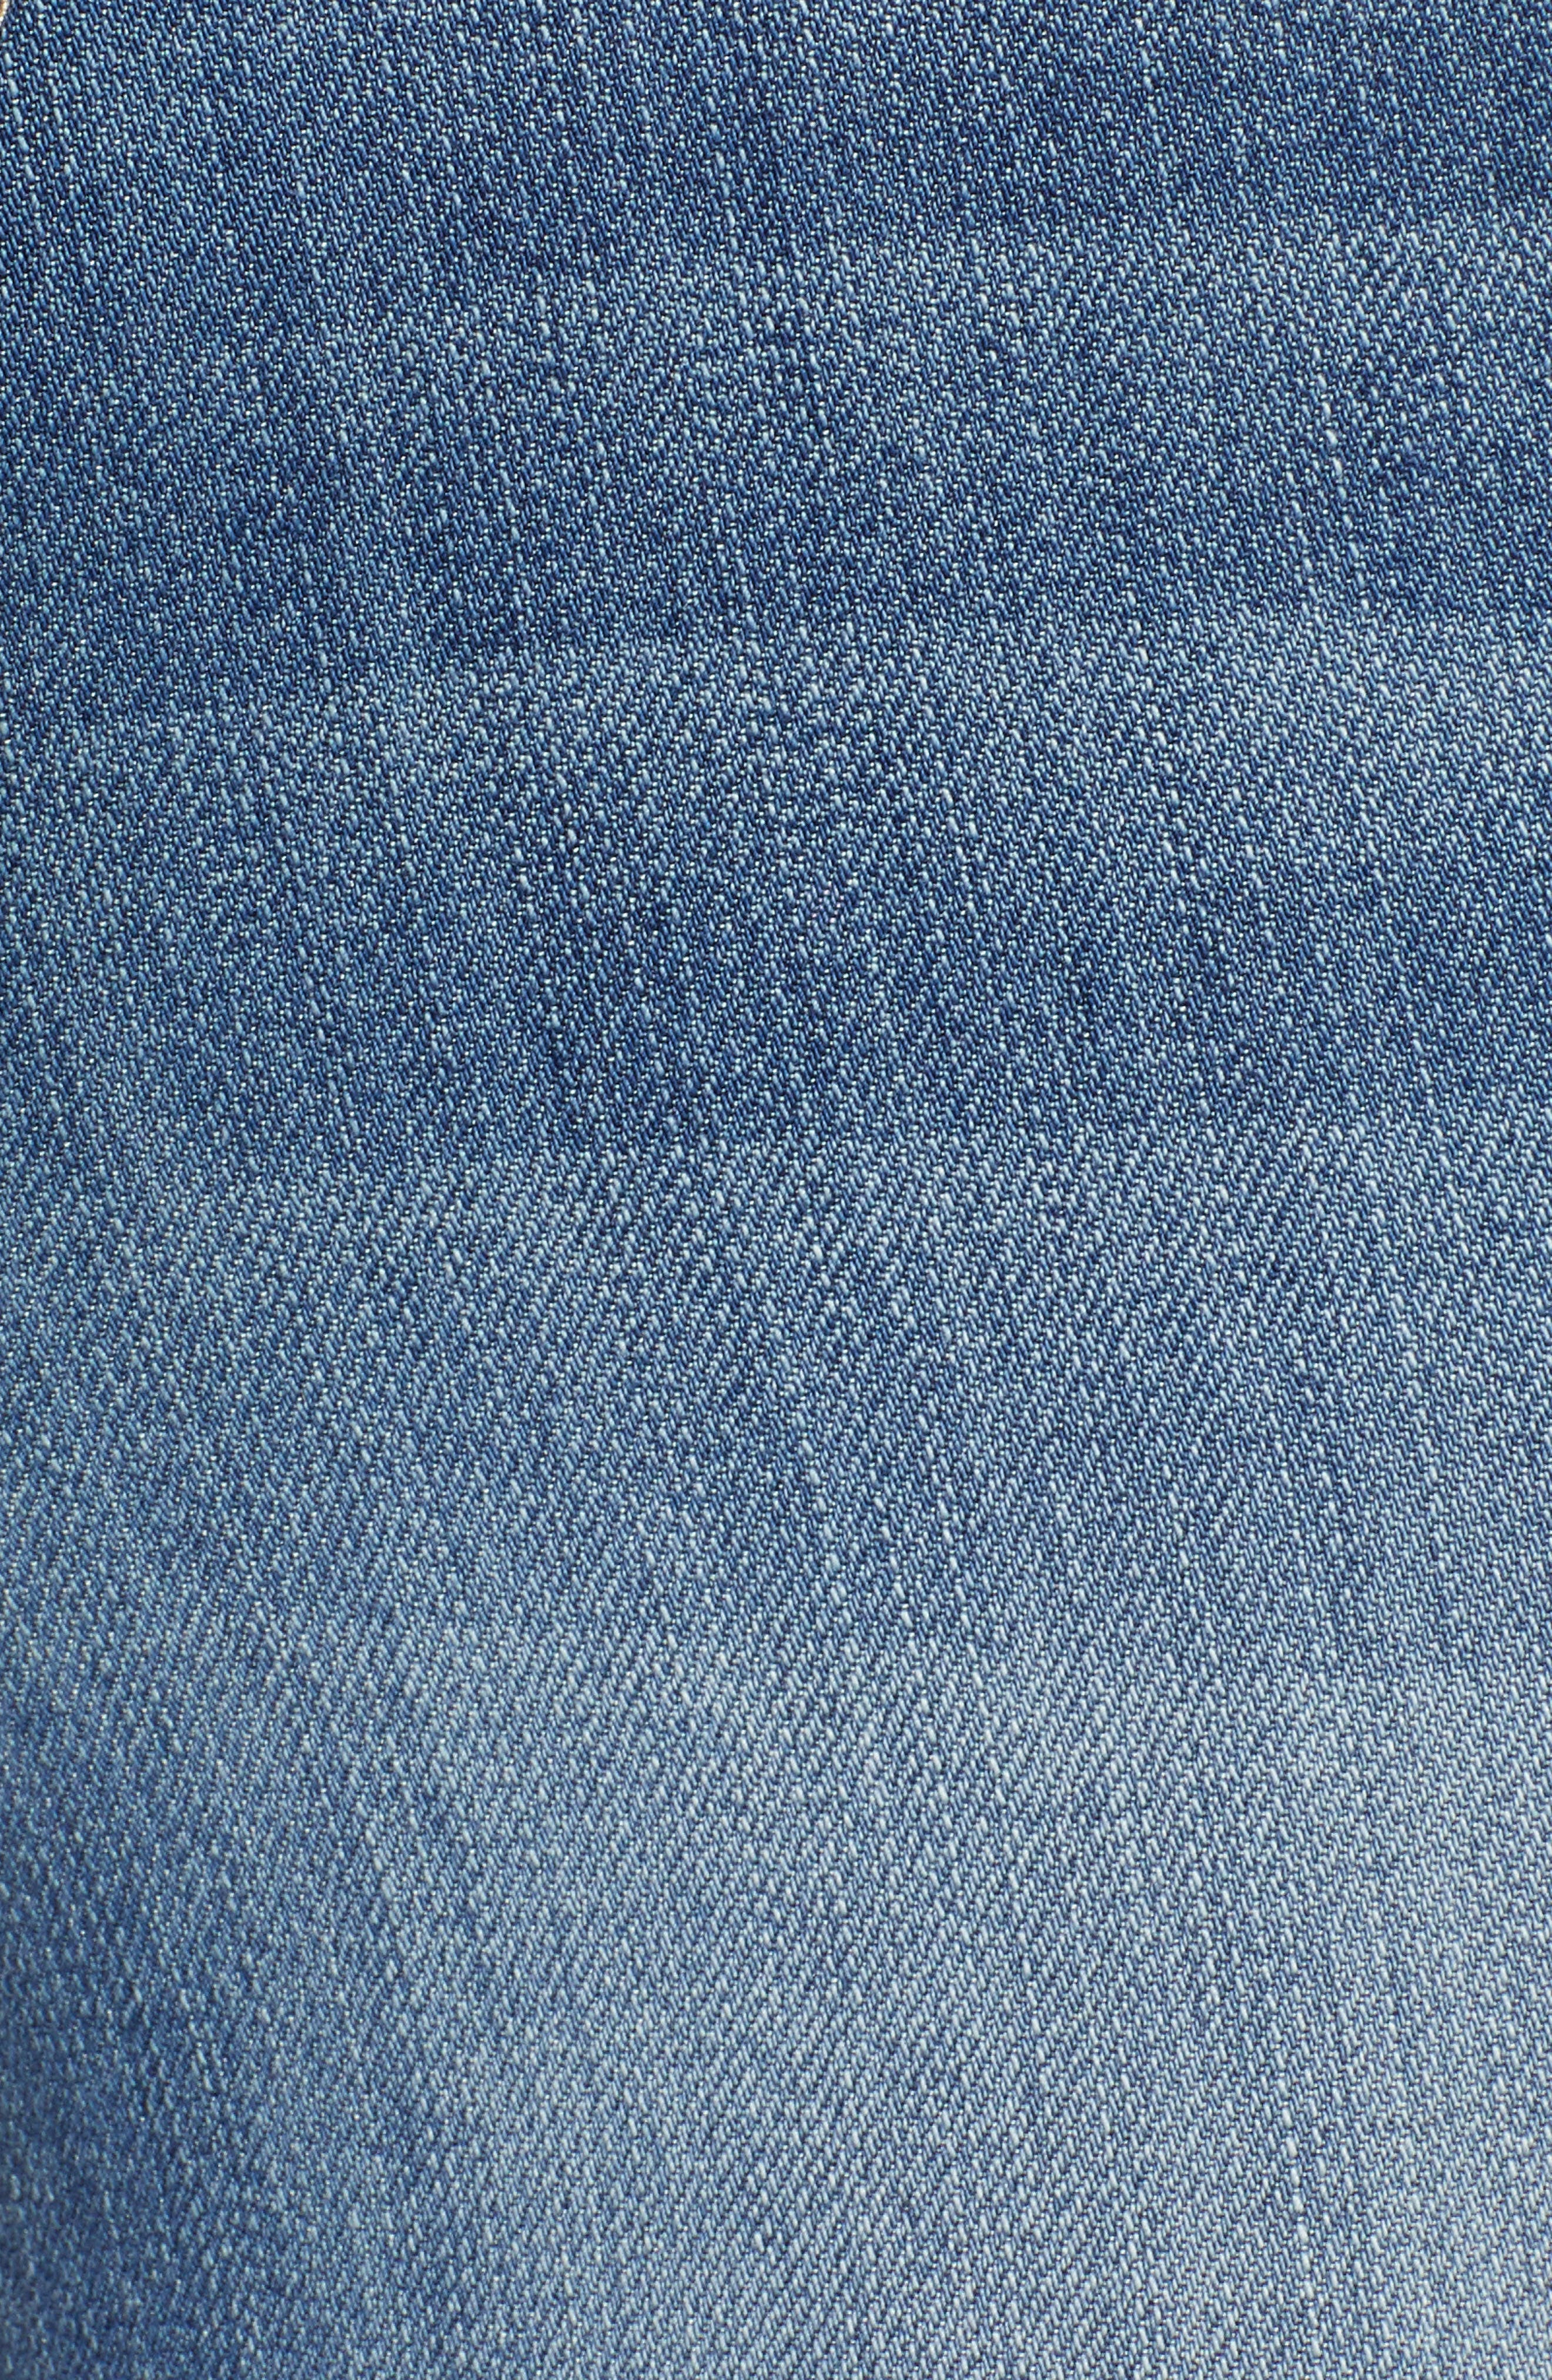 Distressed Skinny Jeans,                             Alternate thumbnail 6, color,                             400